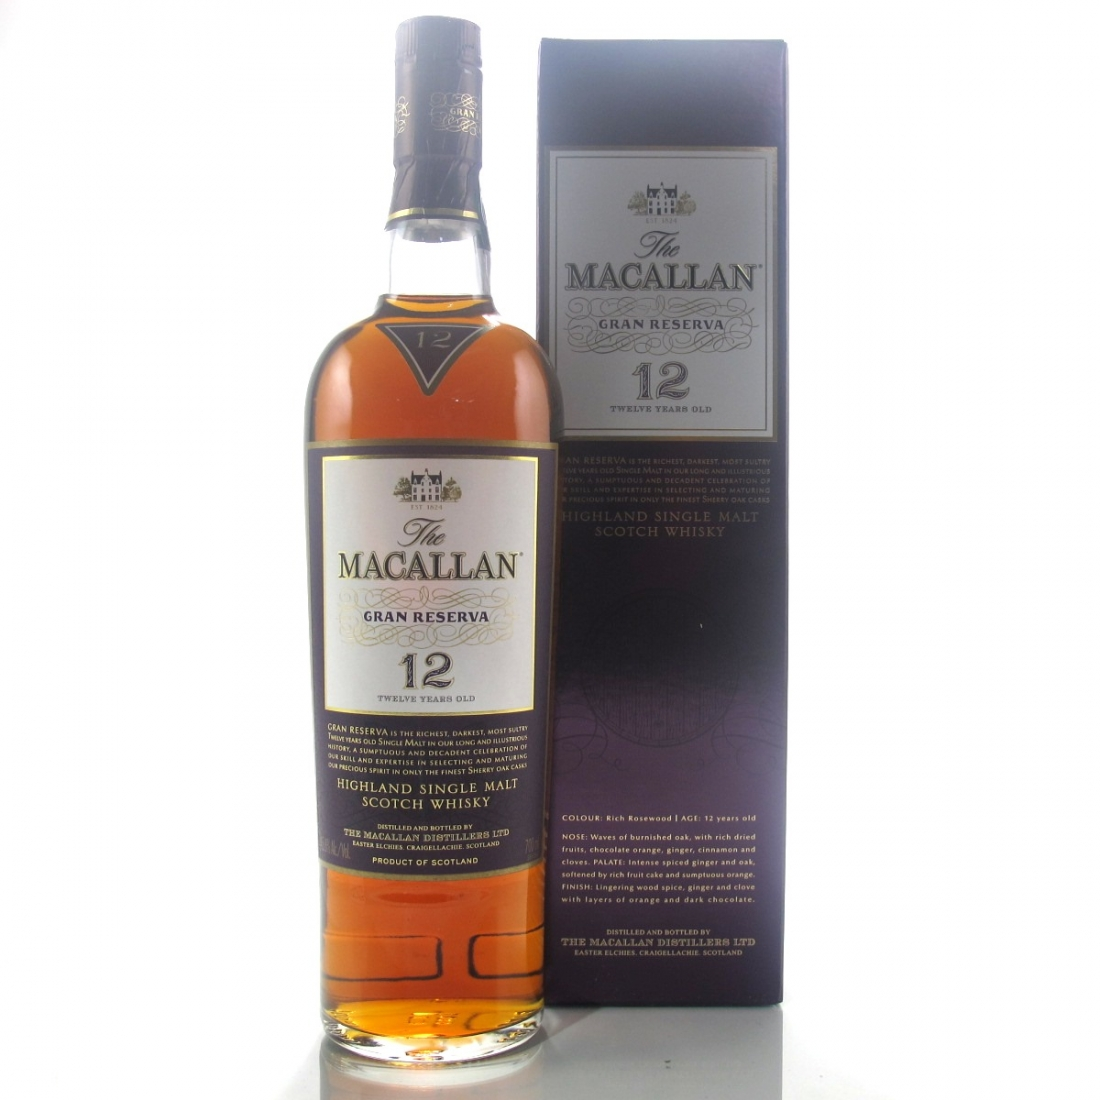 Macallan 12 Year Old Gran Reserva